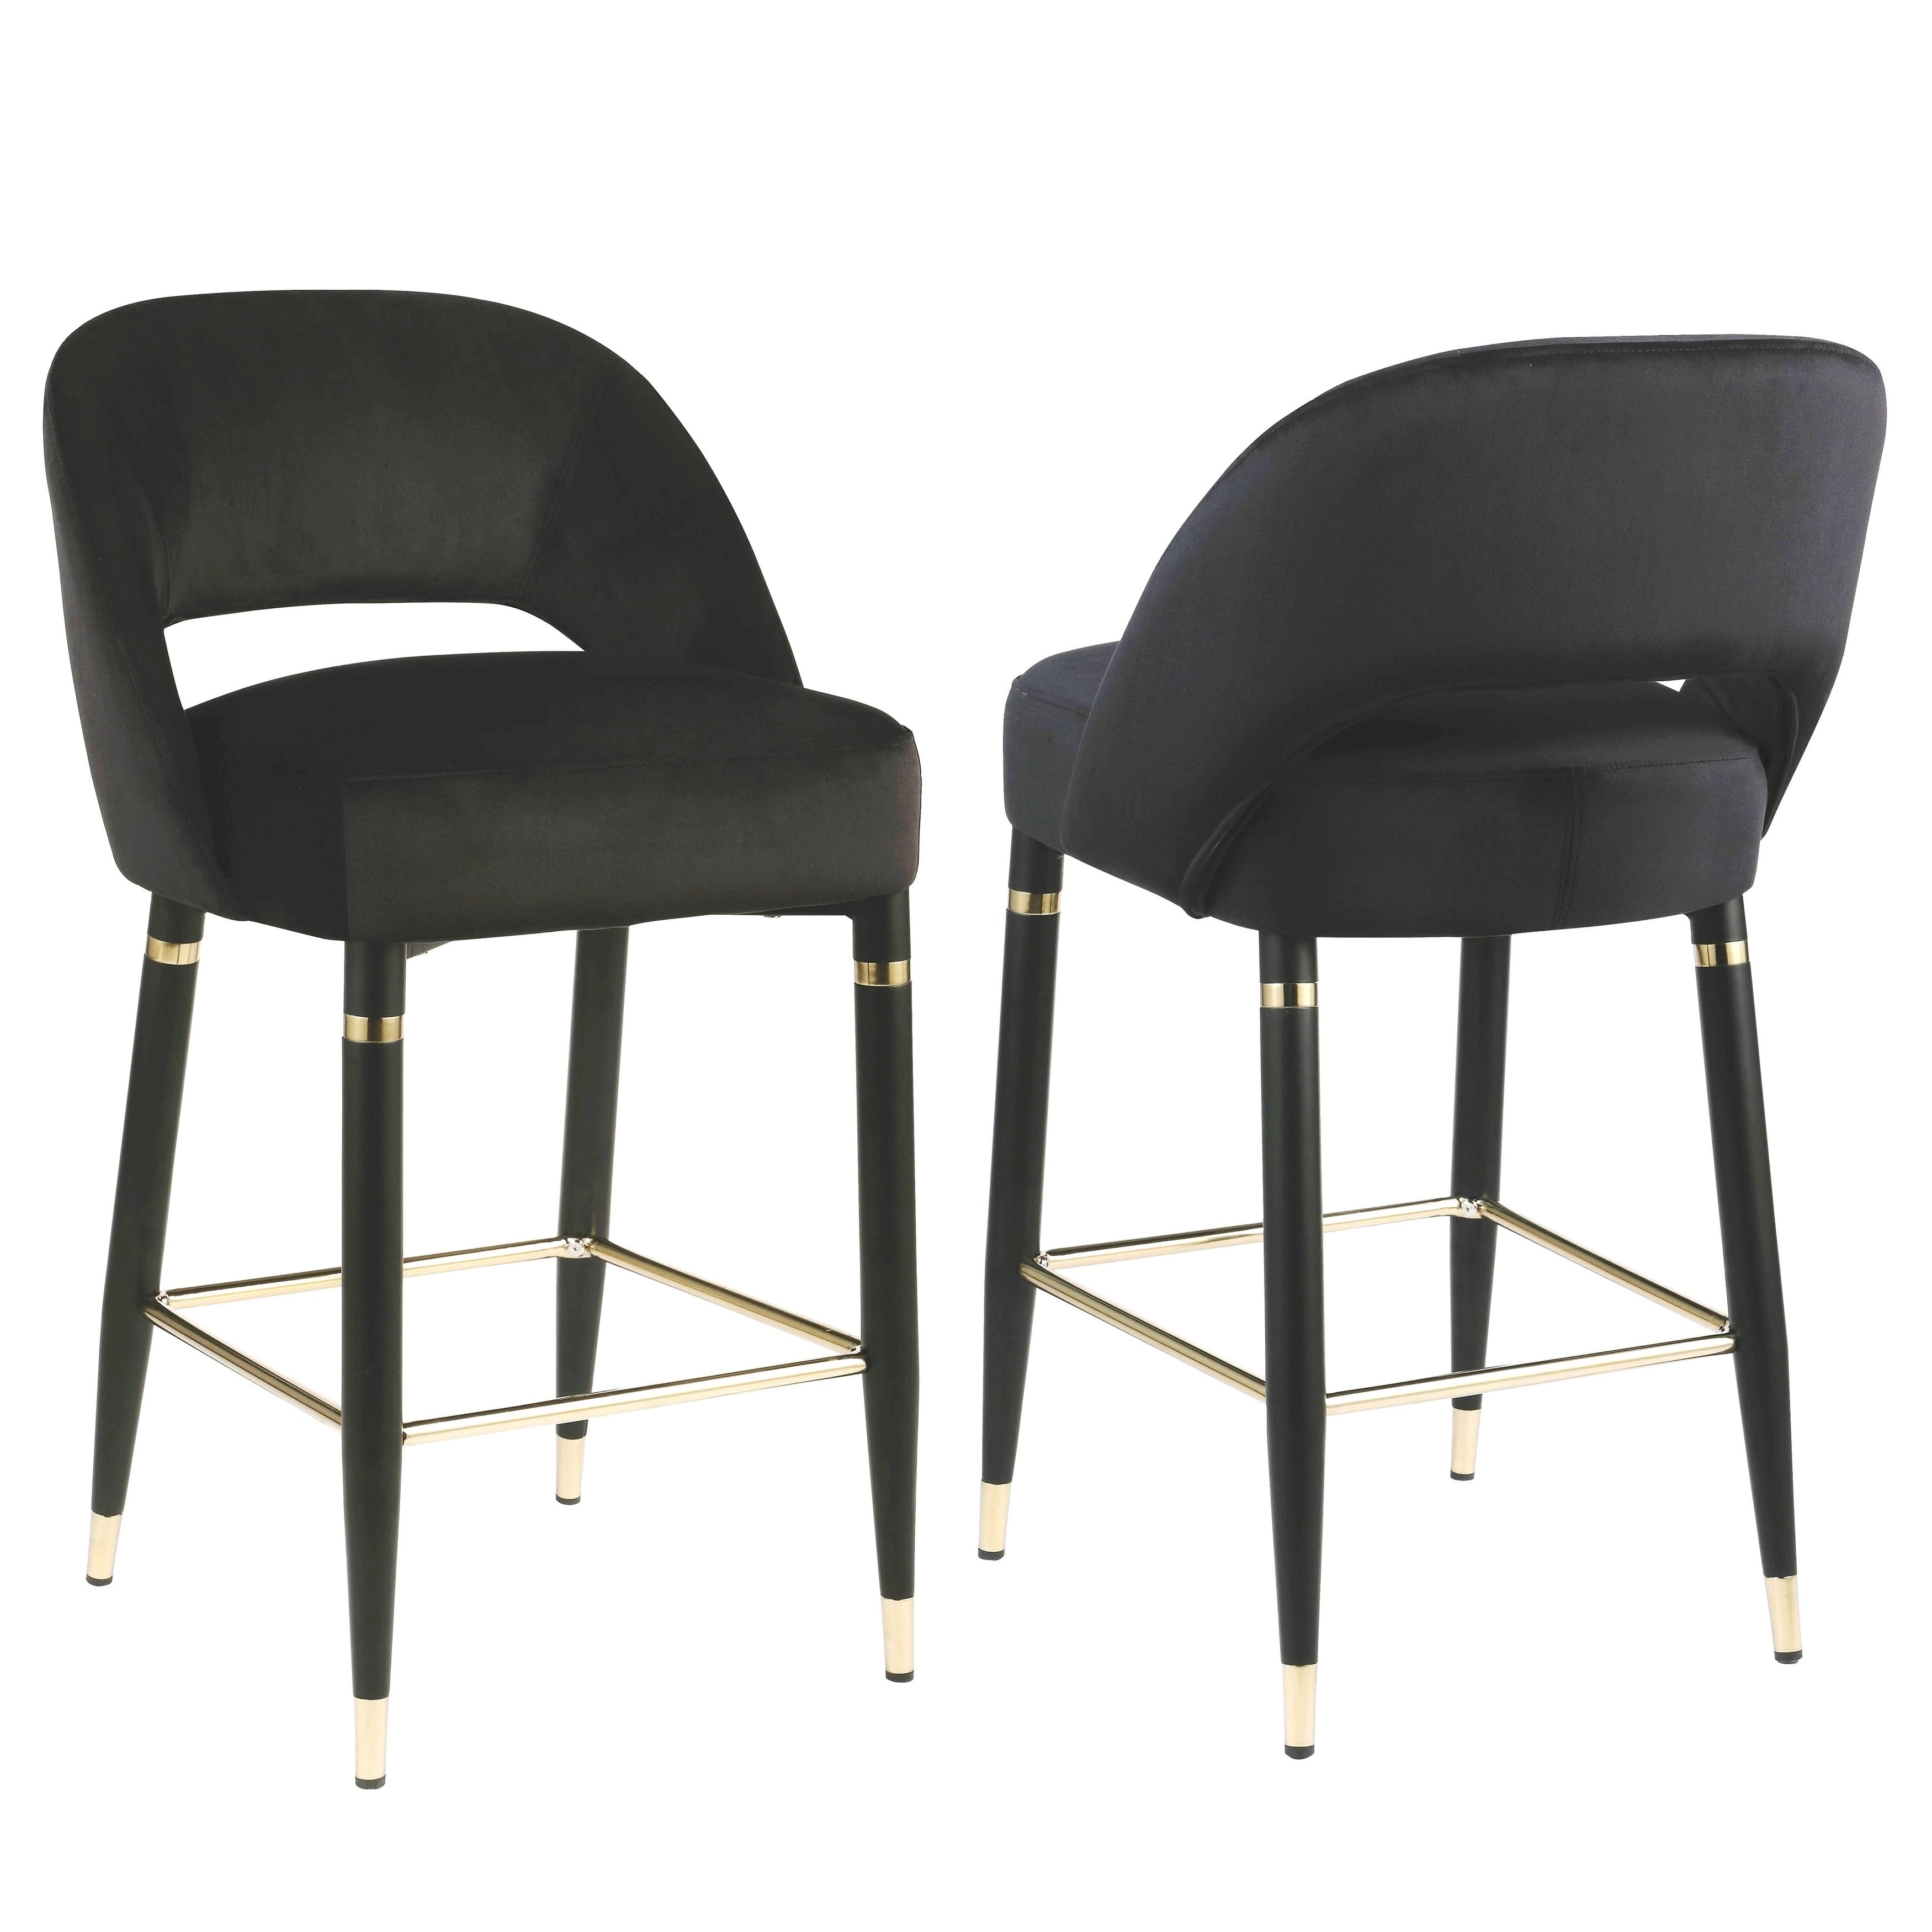 Super Modern Glamorous Design Black Velvet Counter Height Dining Stools Set Of 2 Gmtry Best Dining Table And Chair Ideas Images Gmtryco